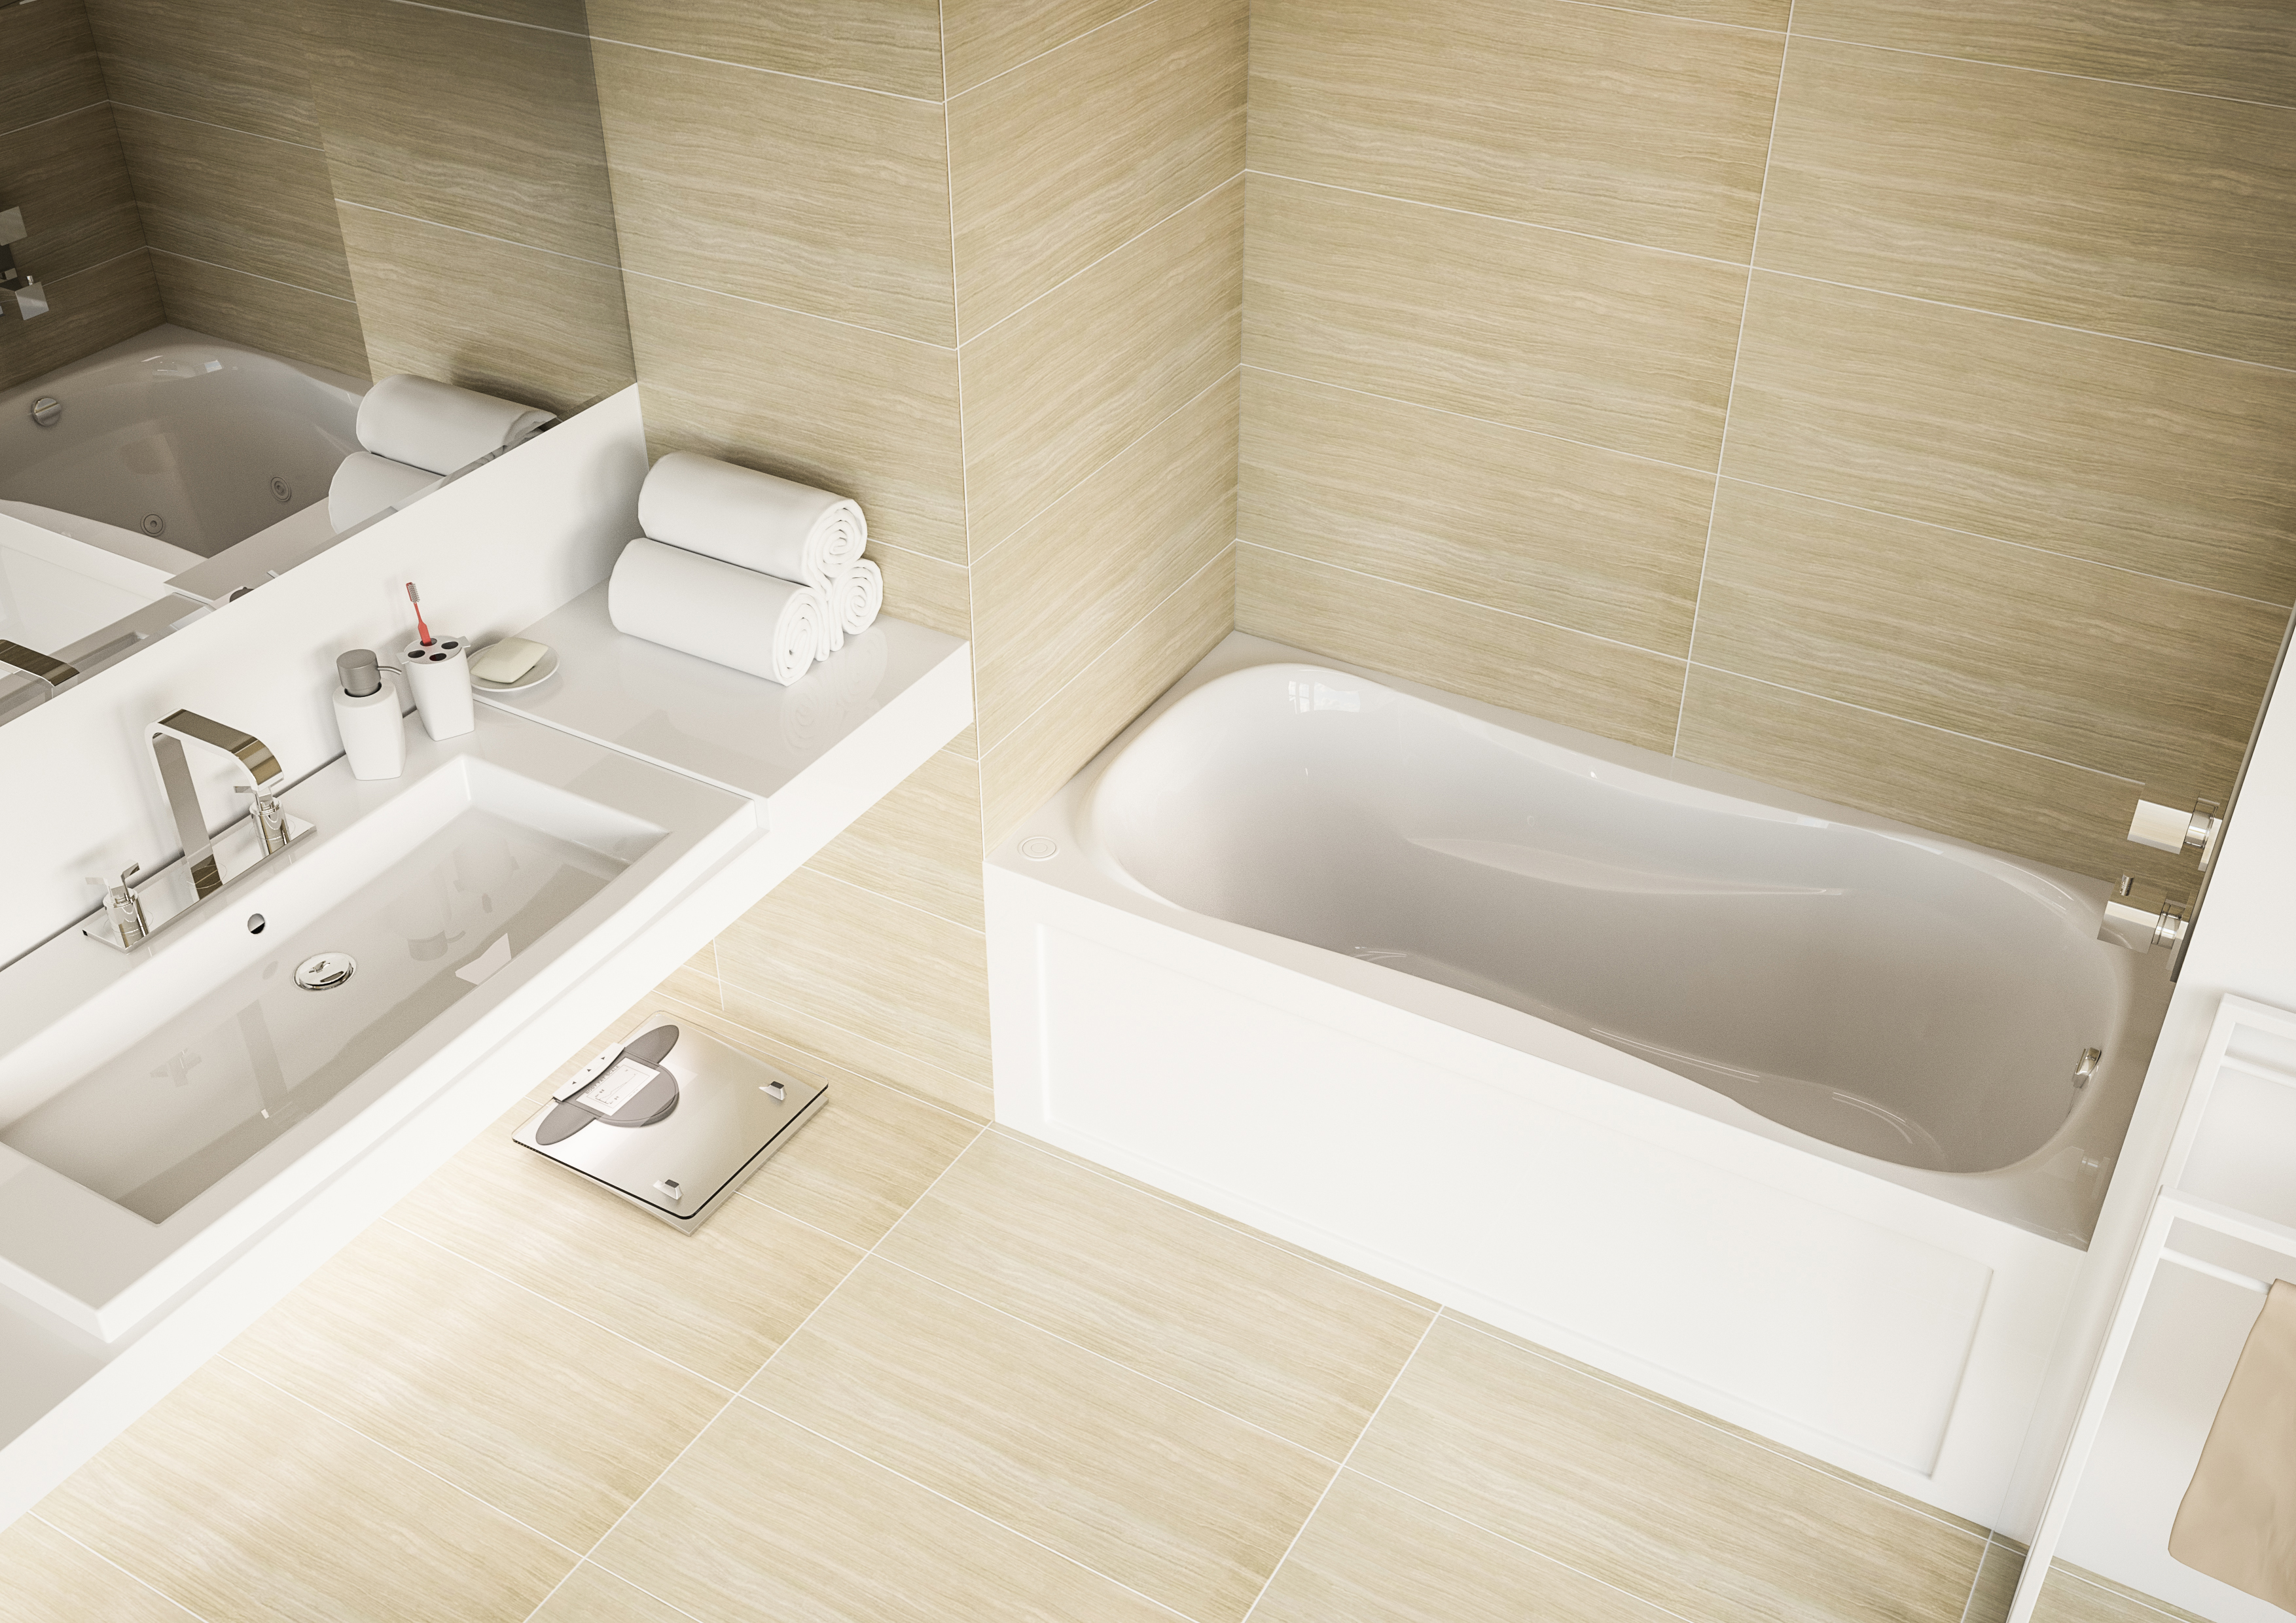 b fitters idea laundry gorgeous porcelain surrounds for tubs and jet wraps dimensions whirlpool remodeling standard home bathroom jacuzzi tub repair bathtub depot bath modern